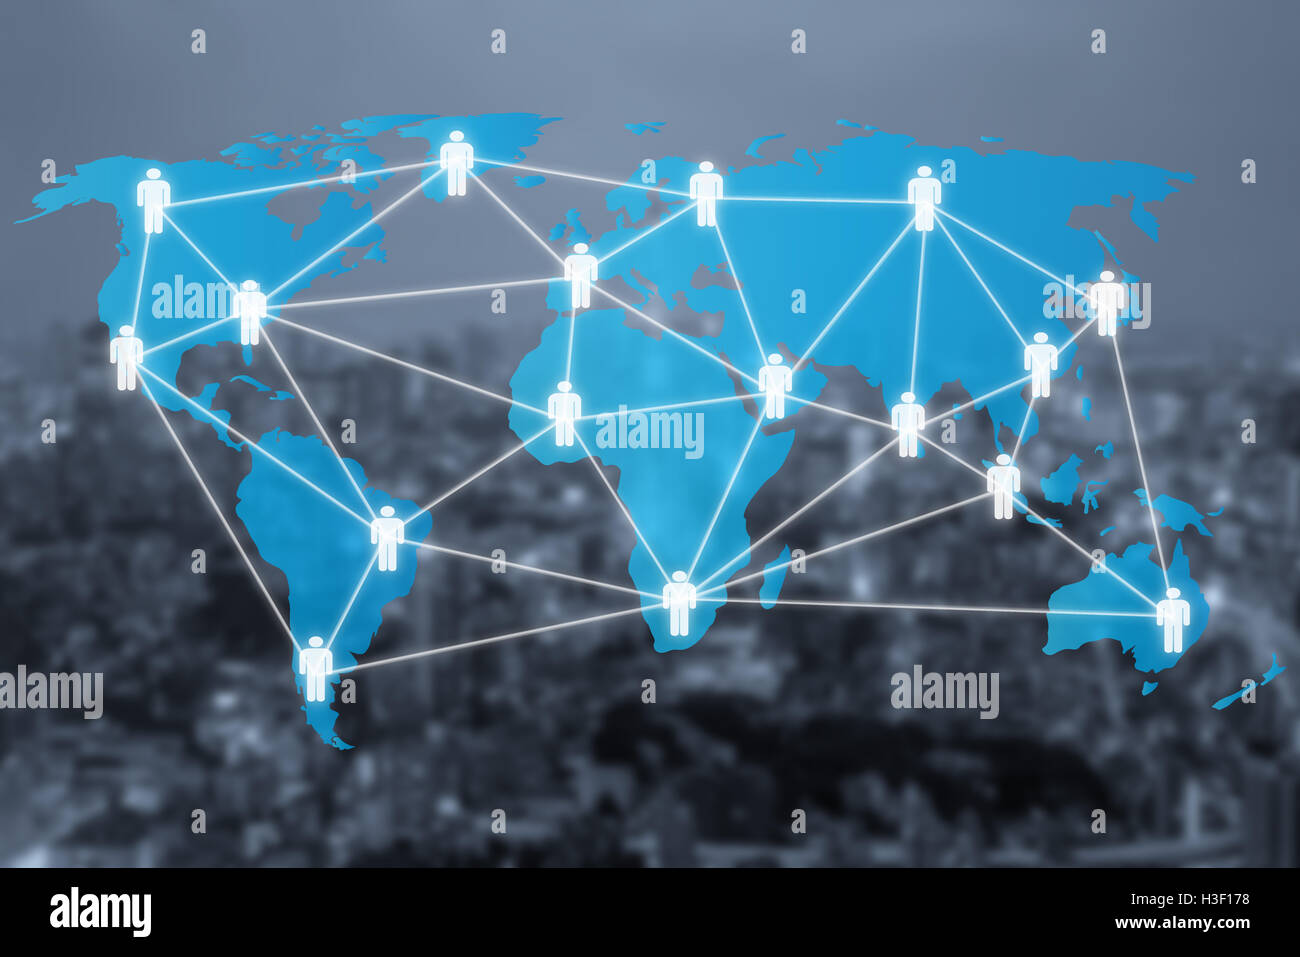 Global social network or people management connection diagram icons with map connection. Network work connections - Stock Image